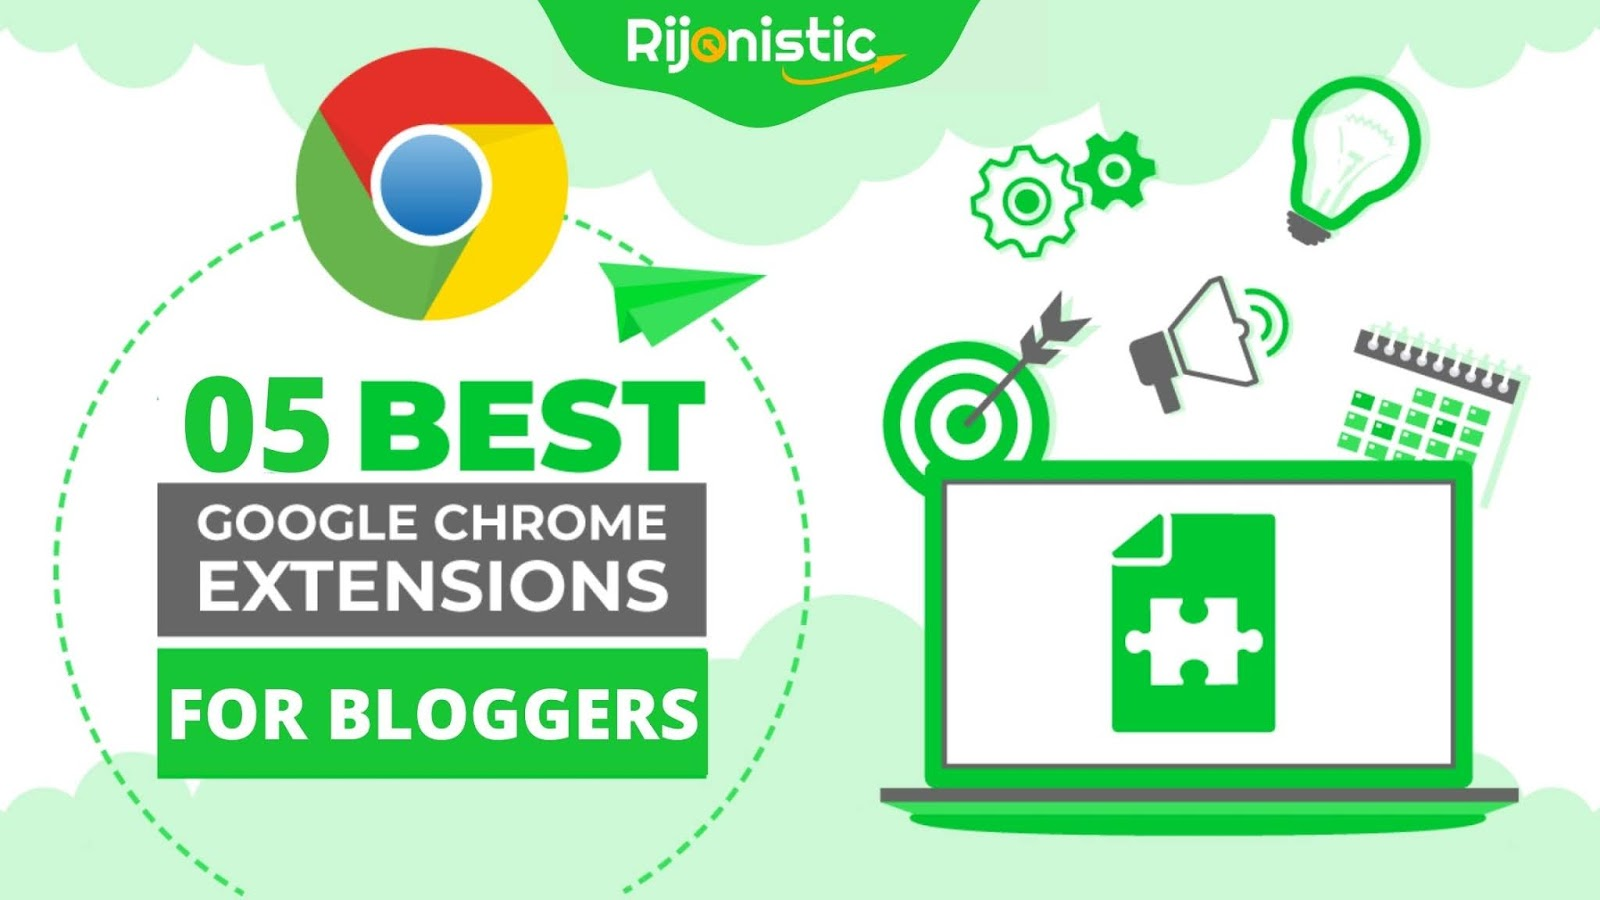 Top 5 google chrome extension for bloggers,